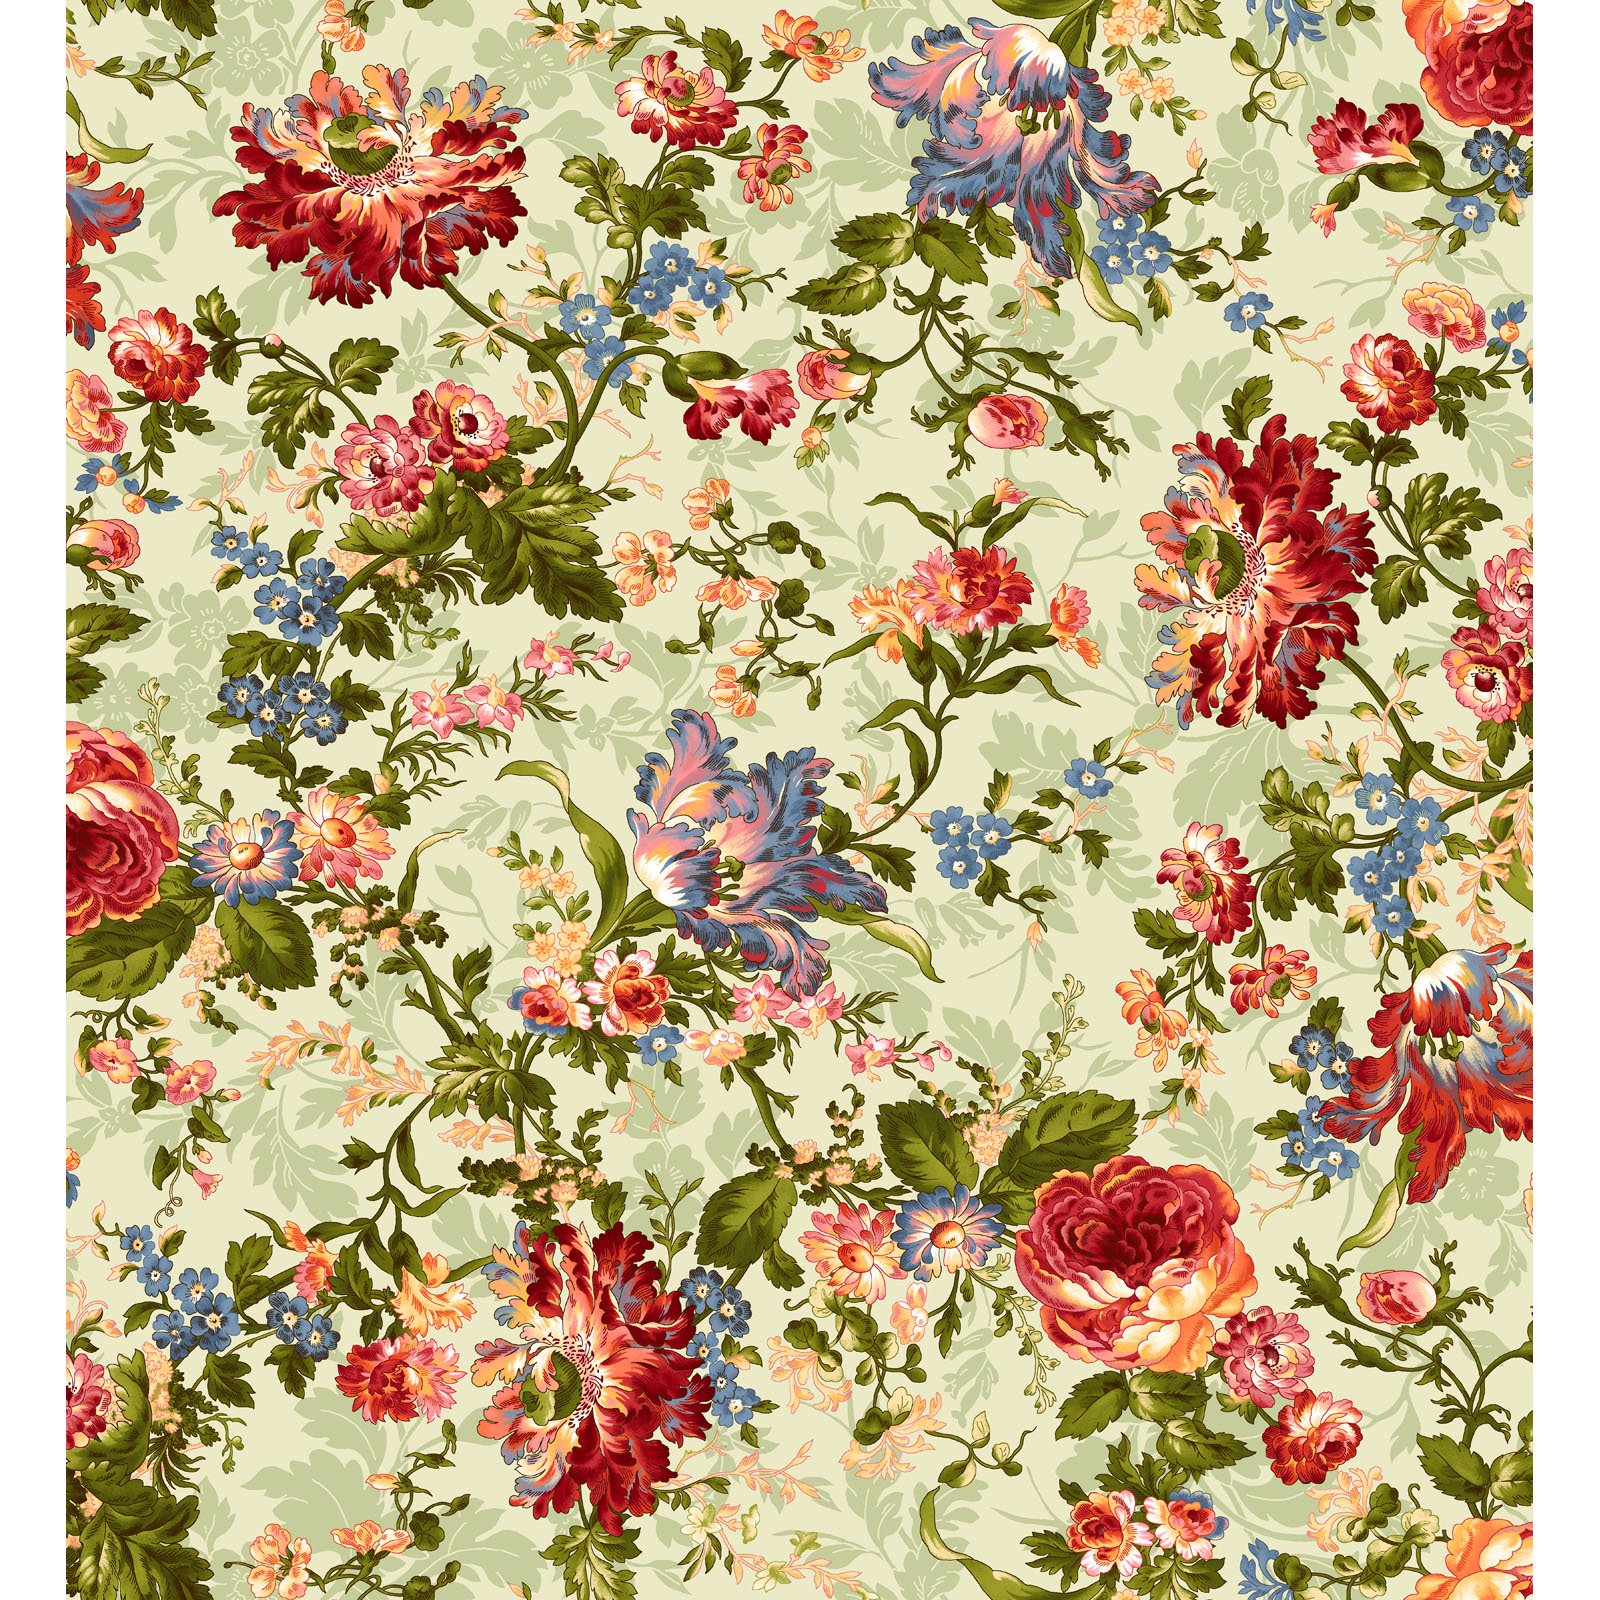 EESC-9870 G - BELLE EPOQUE BY MAYWOOD STUDIO BOLD FLORAL GREEN - ARRIVING JANUARY 2021